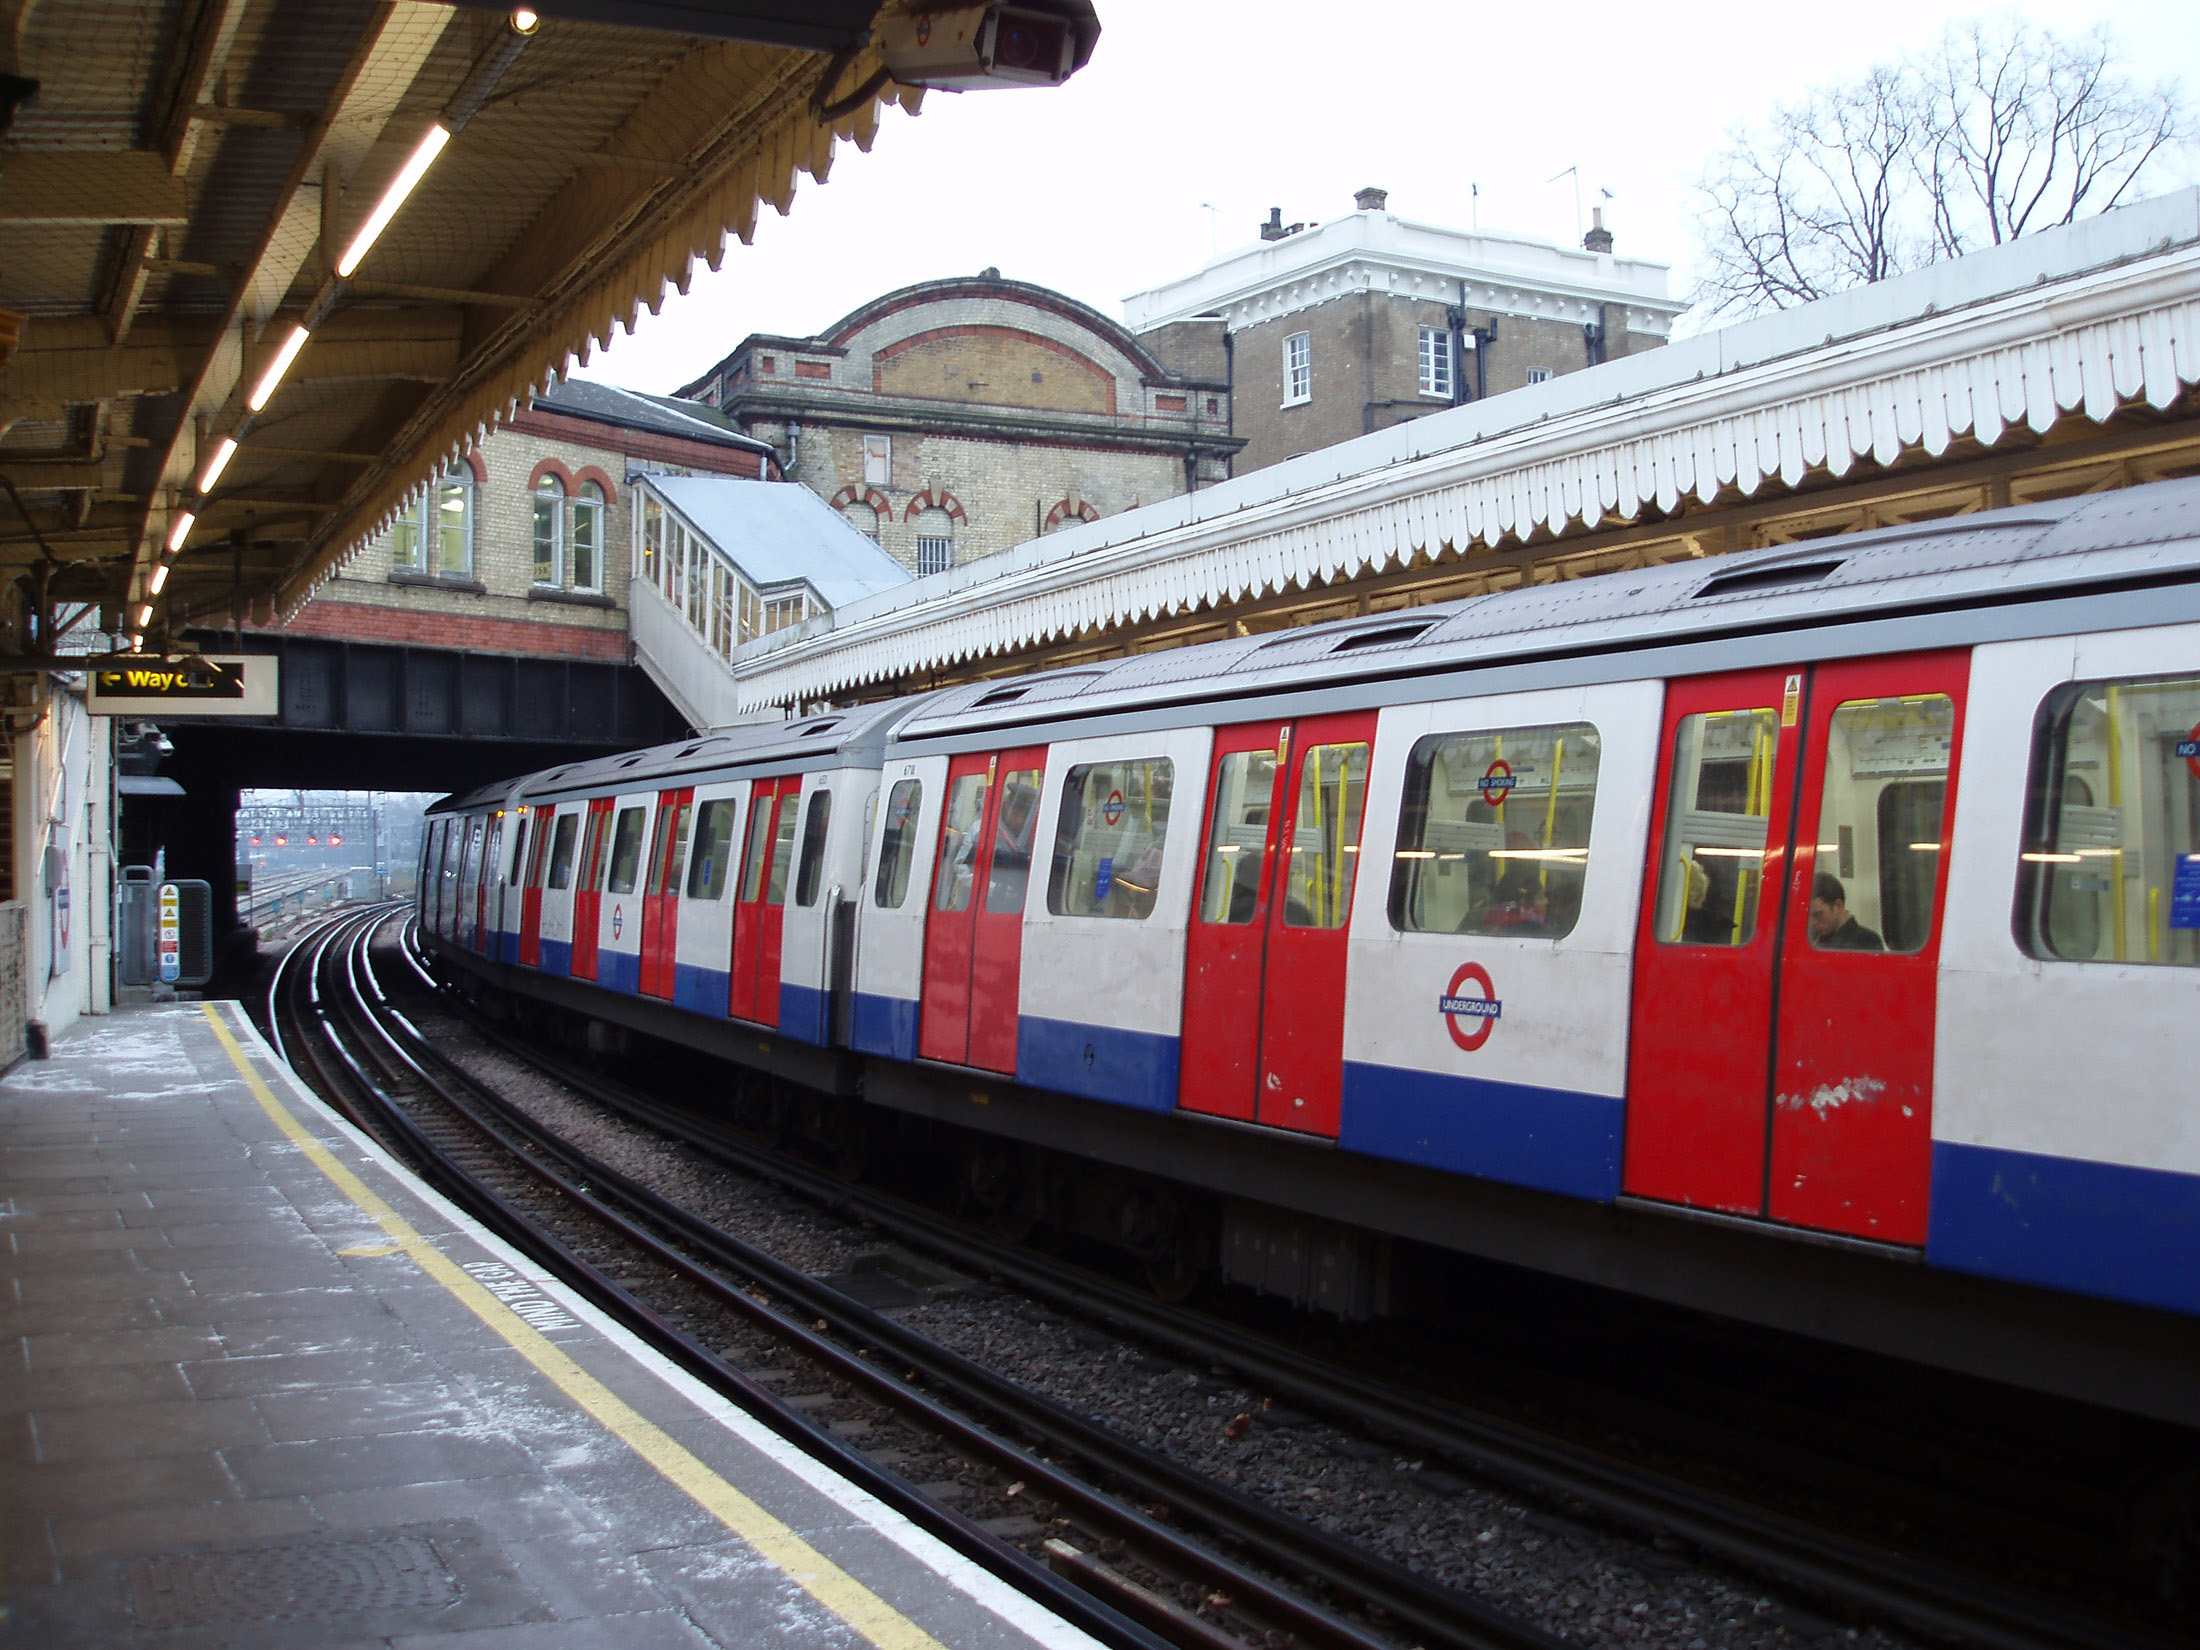 Overground underground subway train or tube train parked at an above ground platform at a station in London waiting for passengers to embark